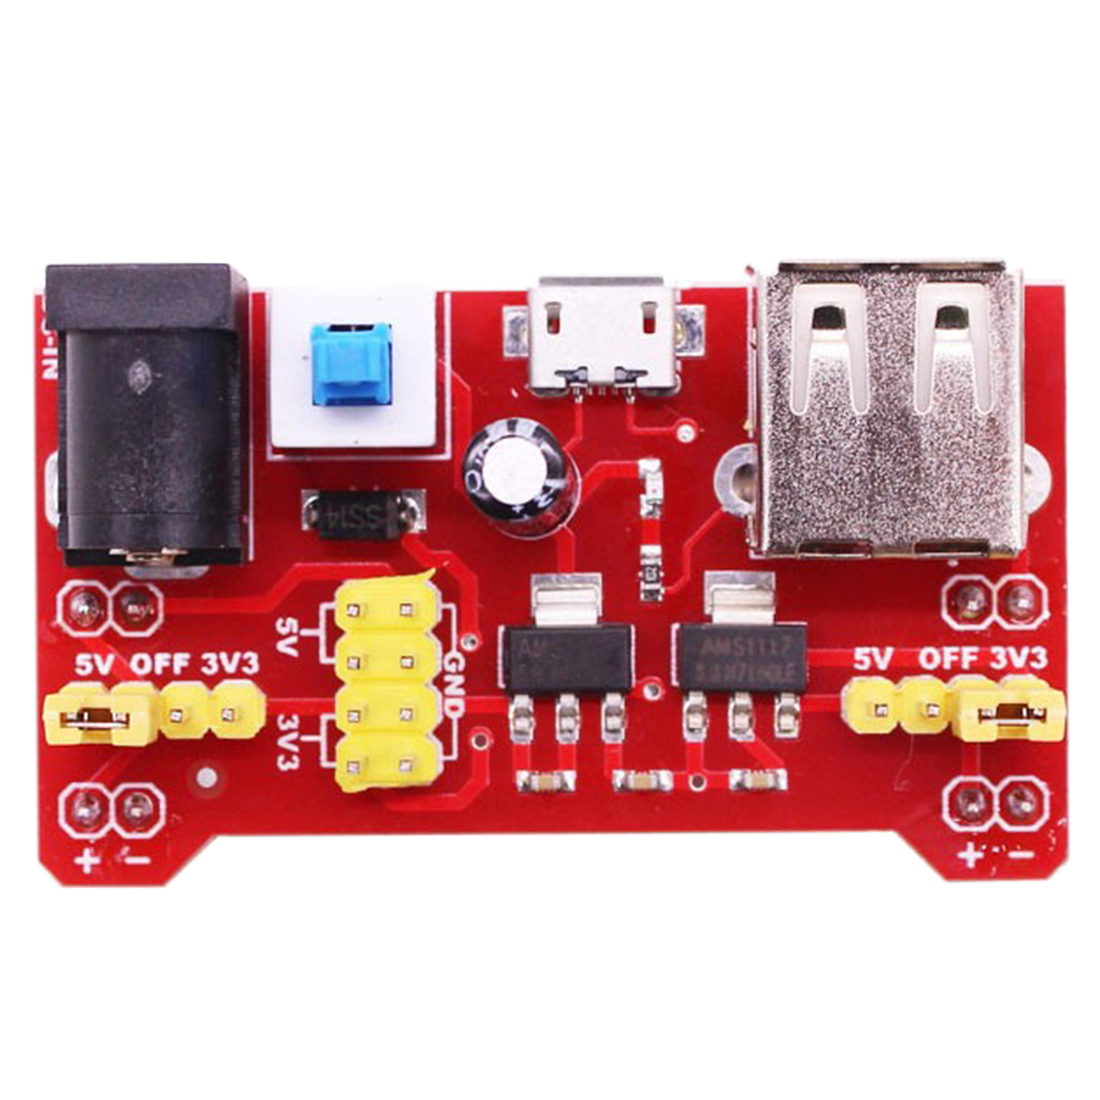 MODIKER High Tech  5V Power Supply Module Breadboard Compatible With 5V 3.3V For Micro:bit Development Board Programmable Toys